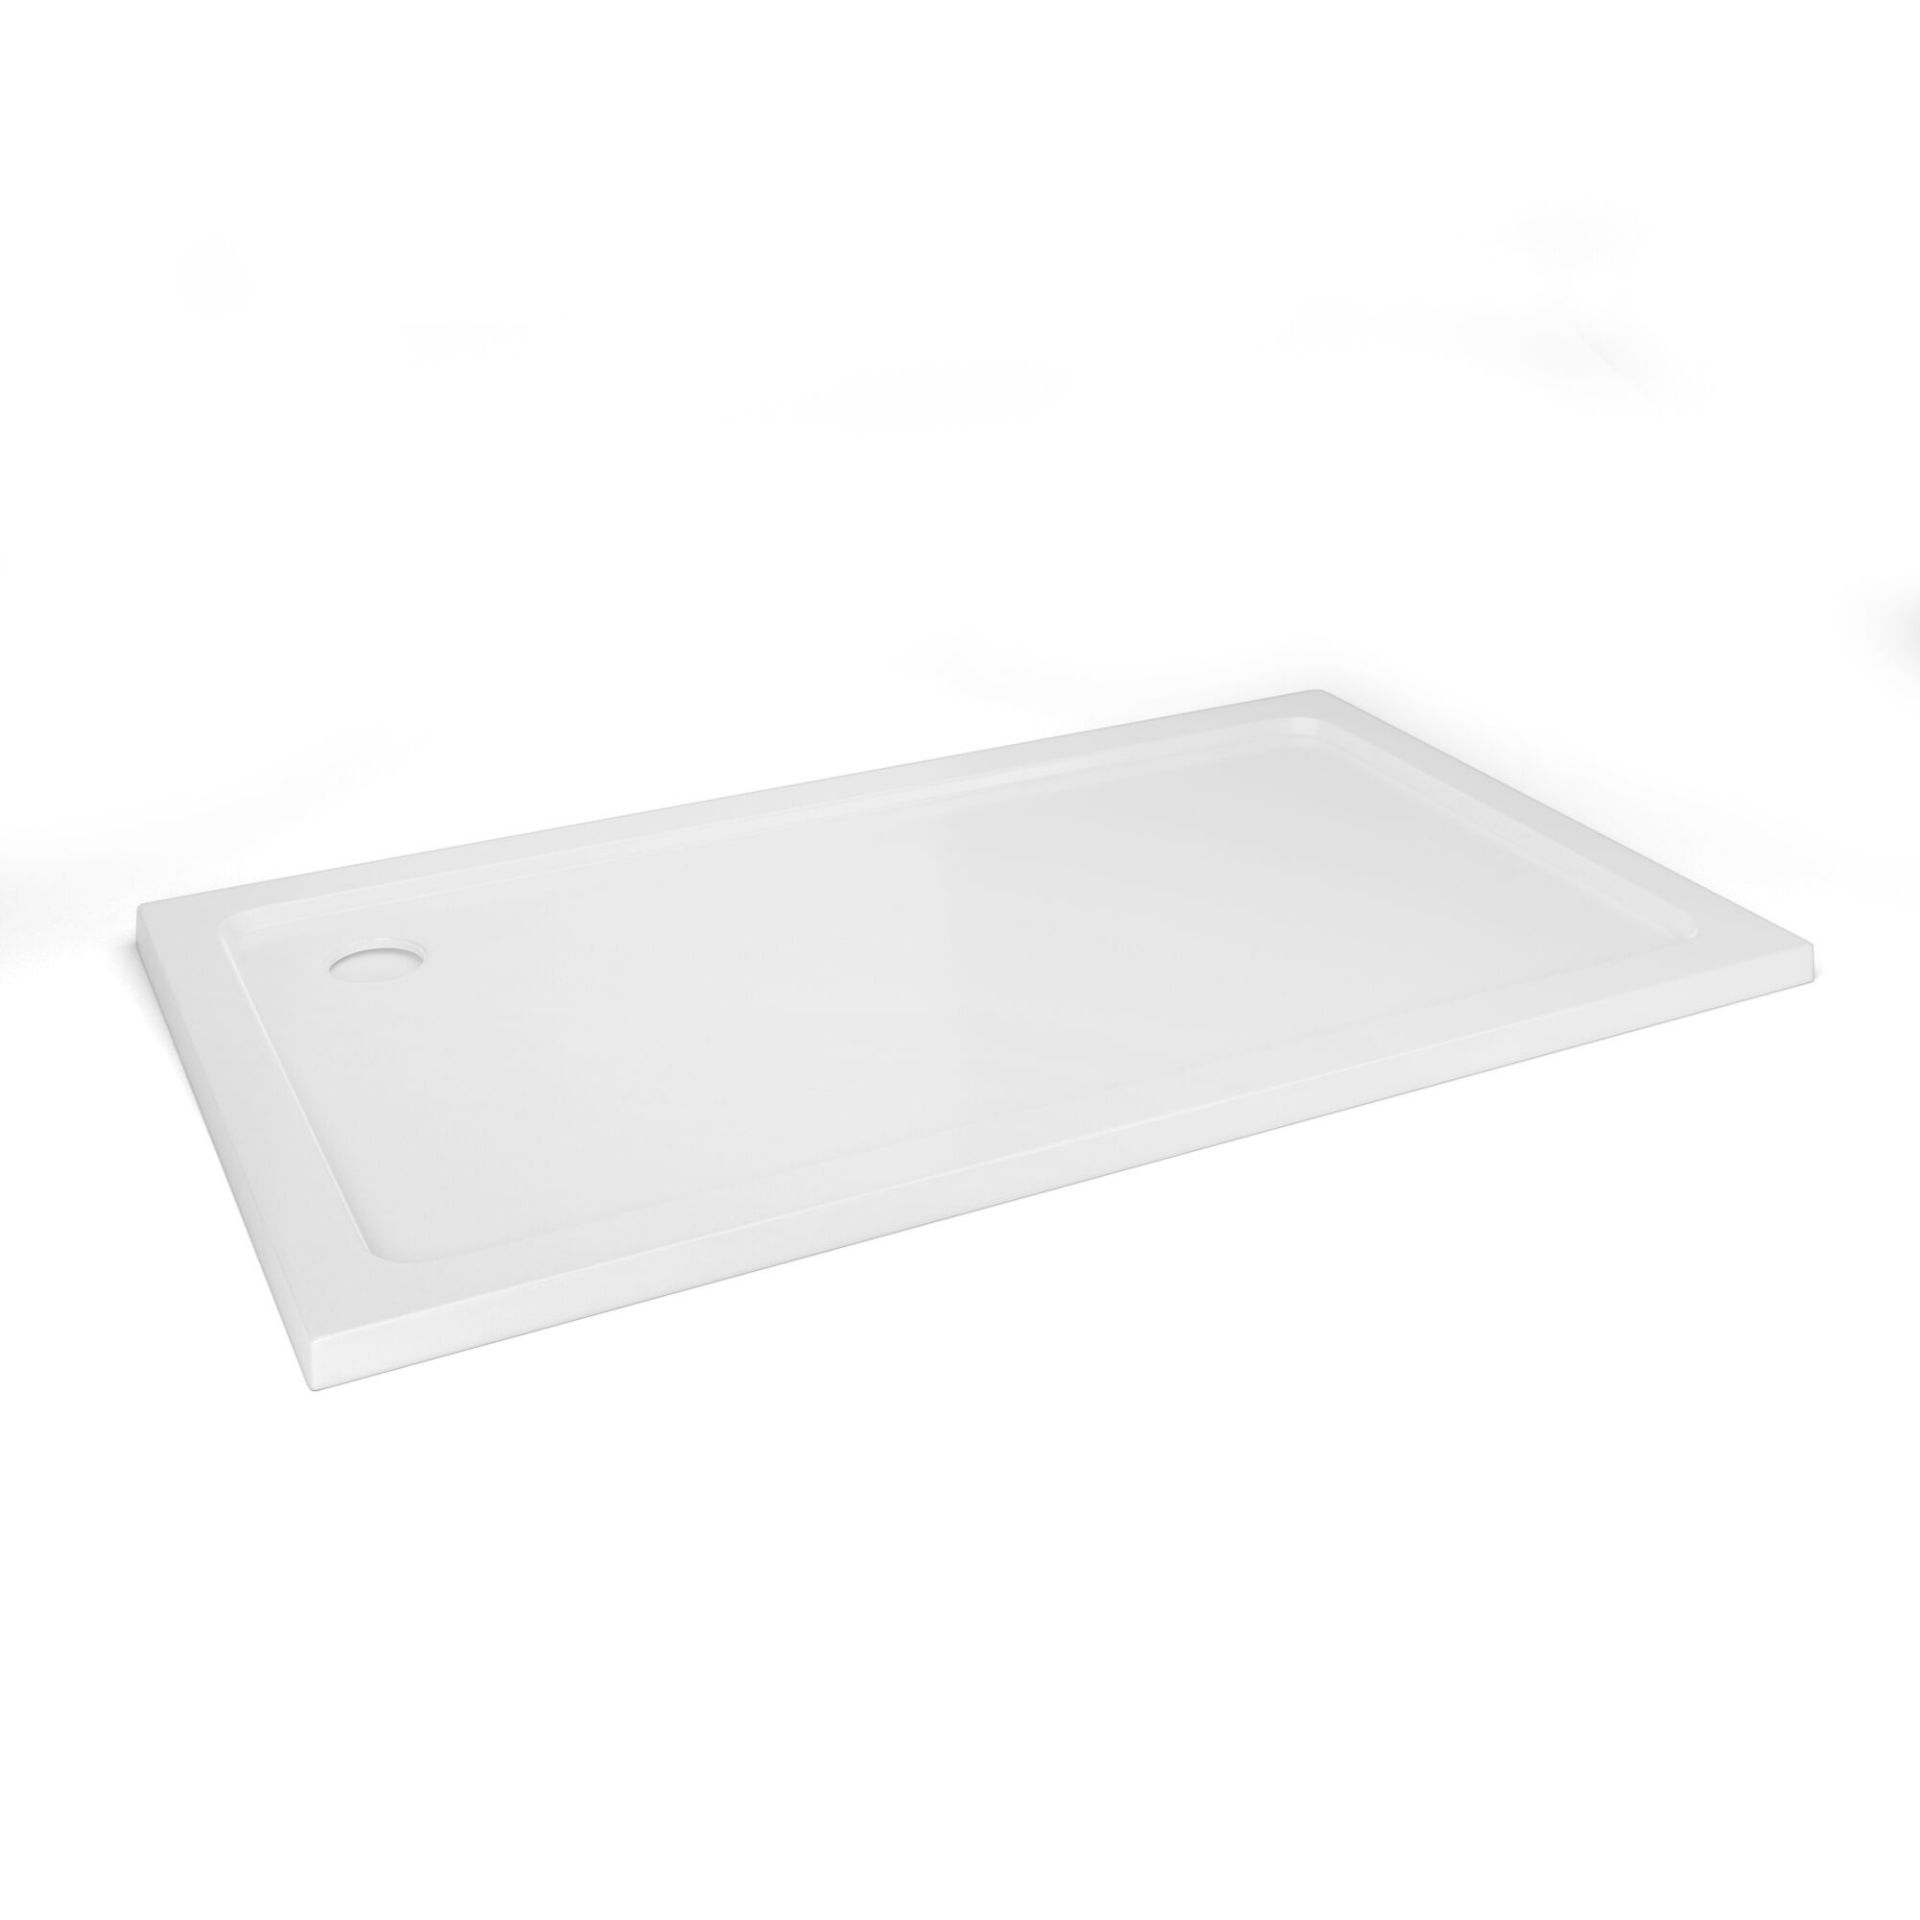 Lot 47 - (XX33) 1400x800mm Rectangular Ultra Slim Stone Shower Tray. RRP £349.99. Constructed from acry...